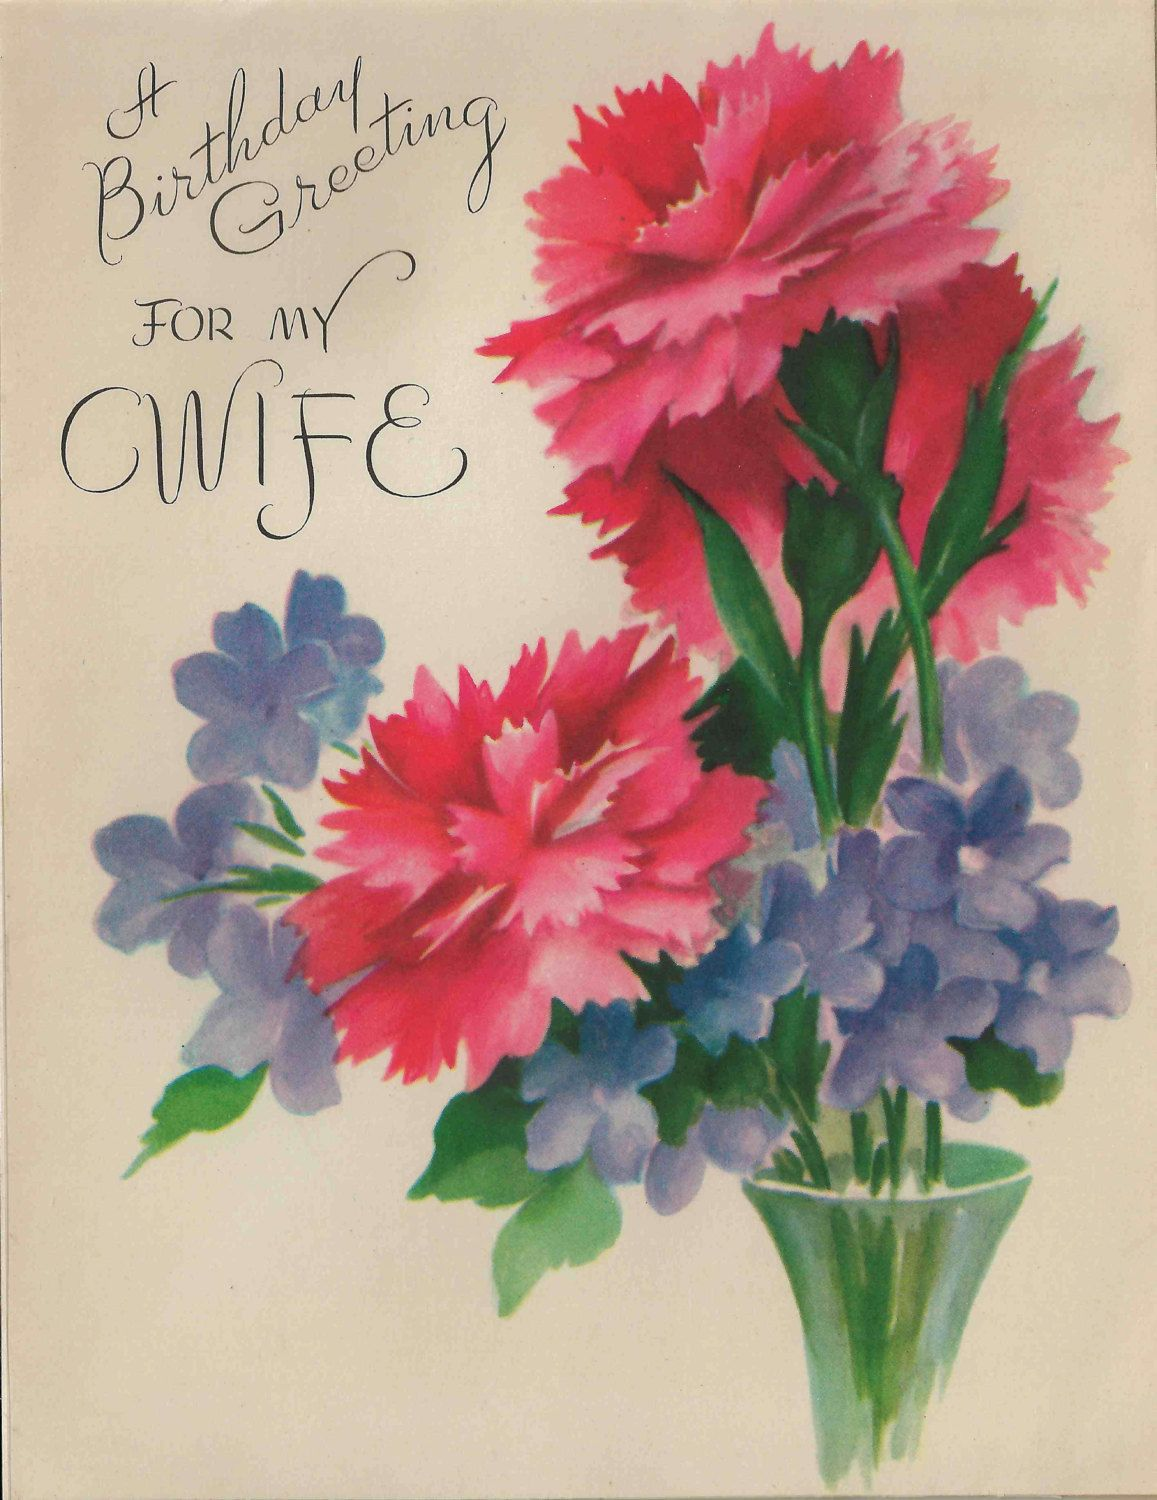 Beautiful Birthday Greeting For My Wife Card With Lovely Carnations